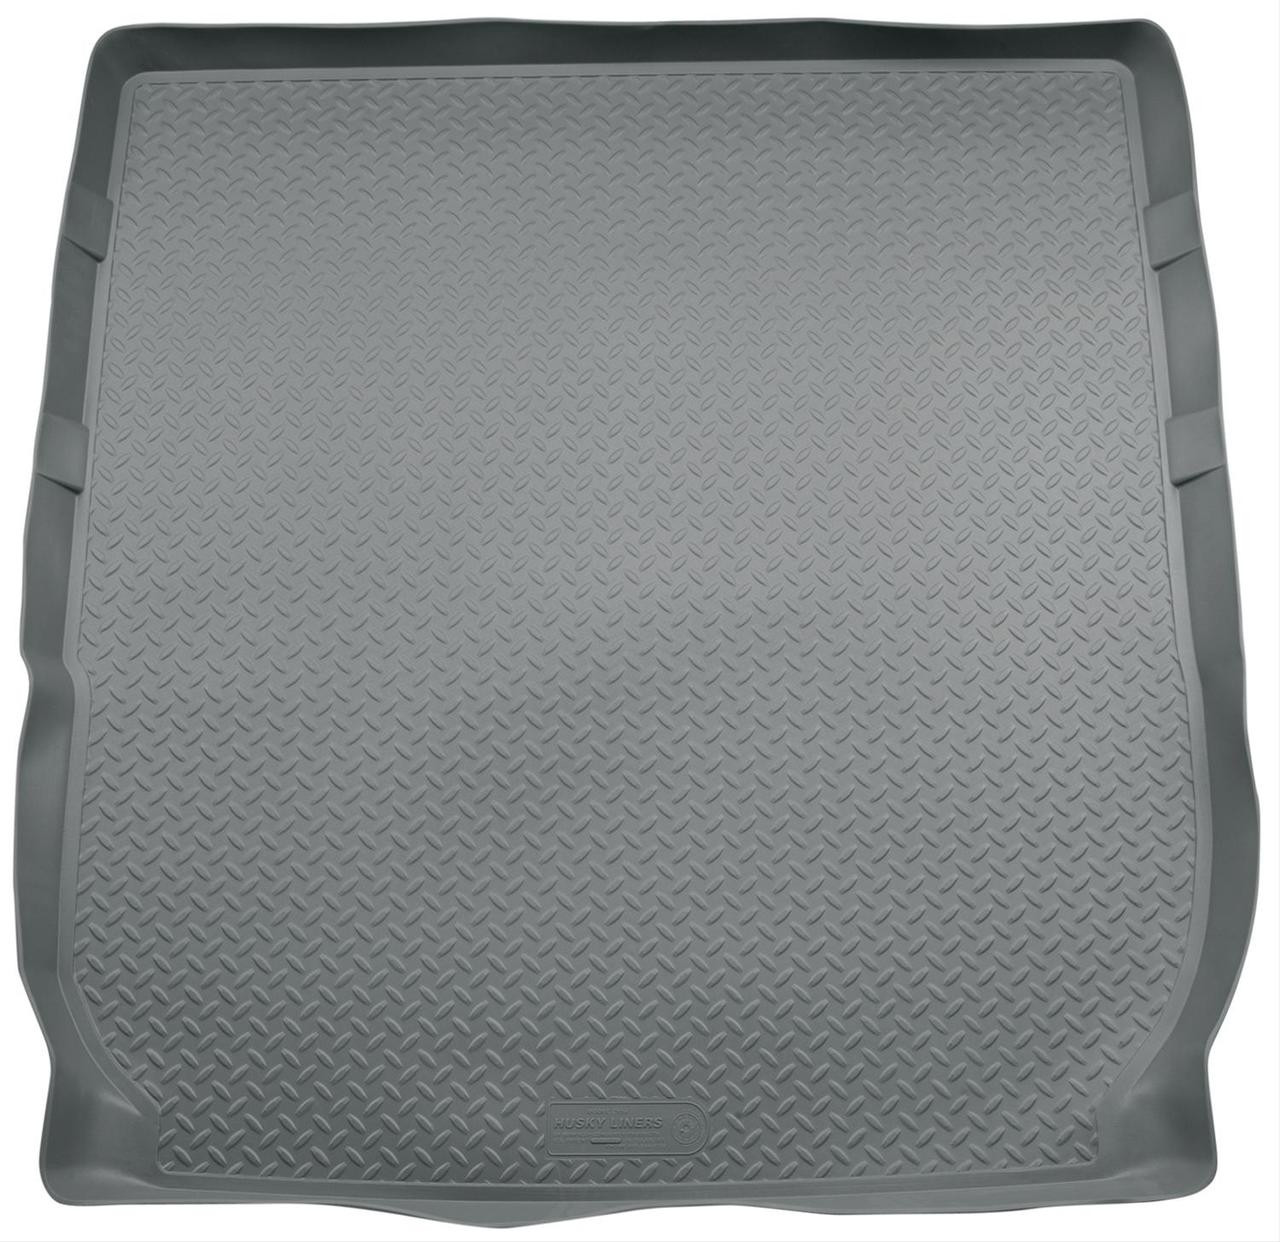 08-16 ENCLAVE/09-16 TRAVERSE (BEHIND 2ND SEAT - FITS OVER FOLDED FLAT 3RD ROW SEAT) REAR LINER GREY